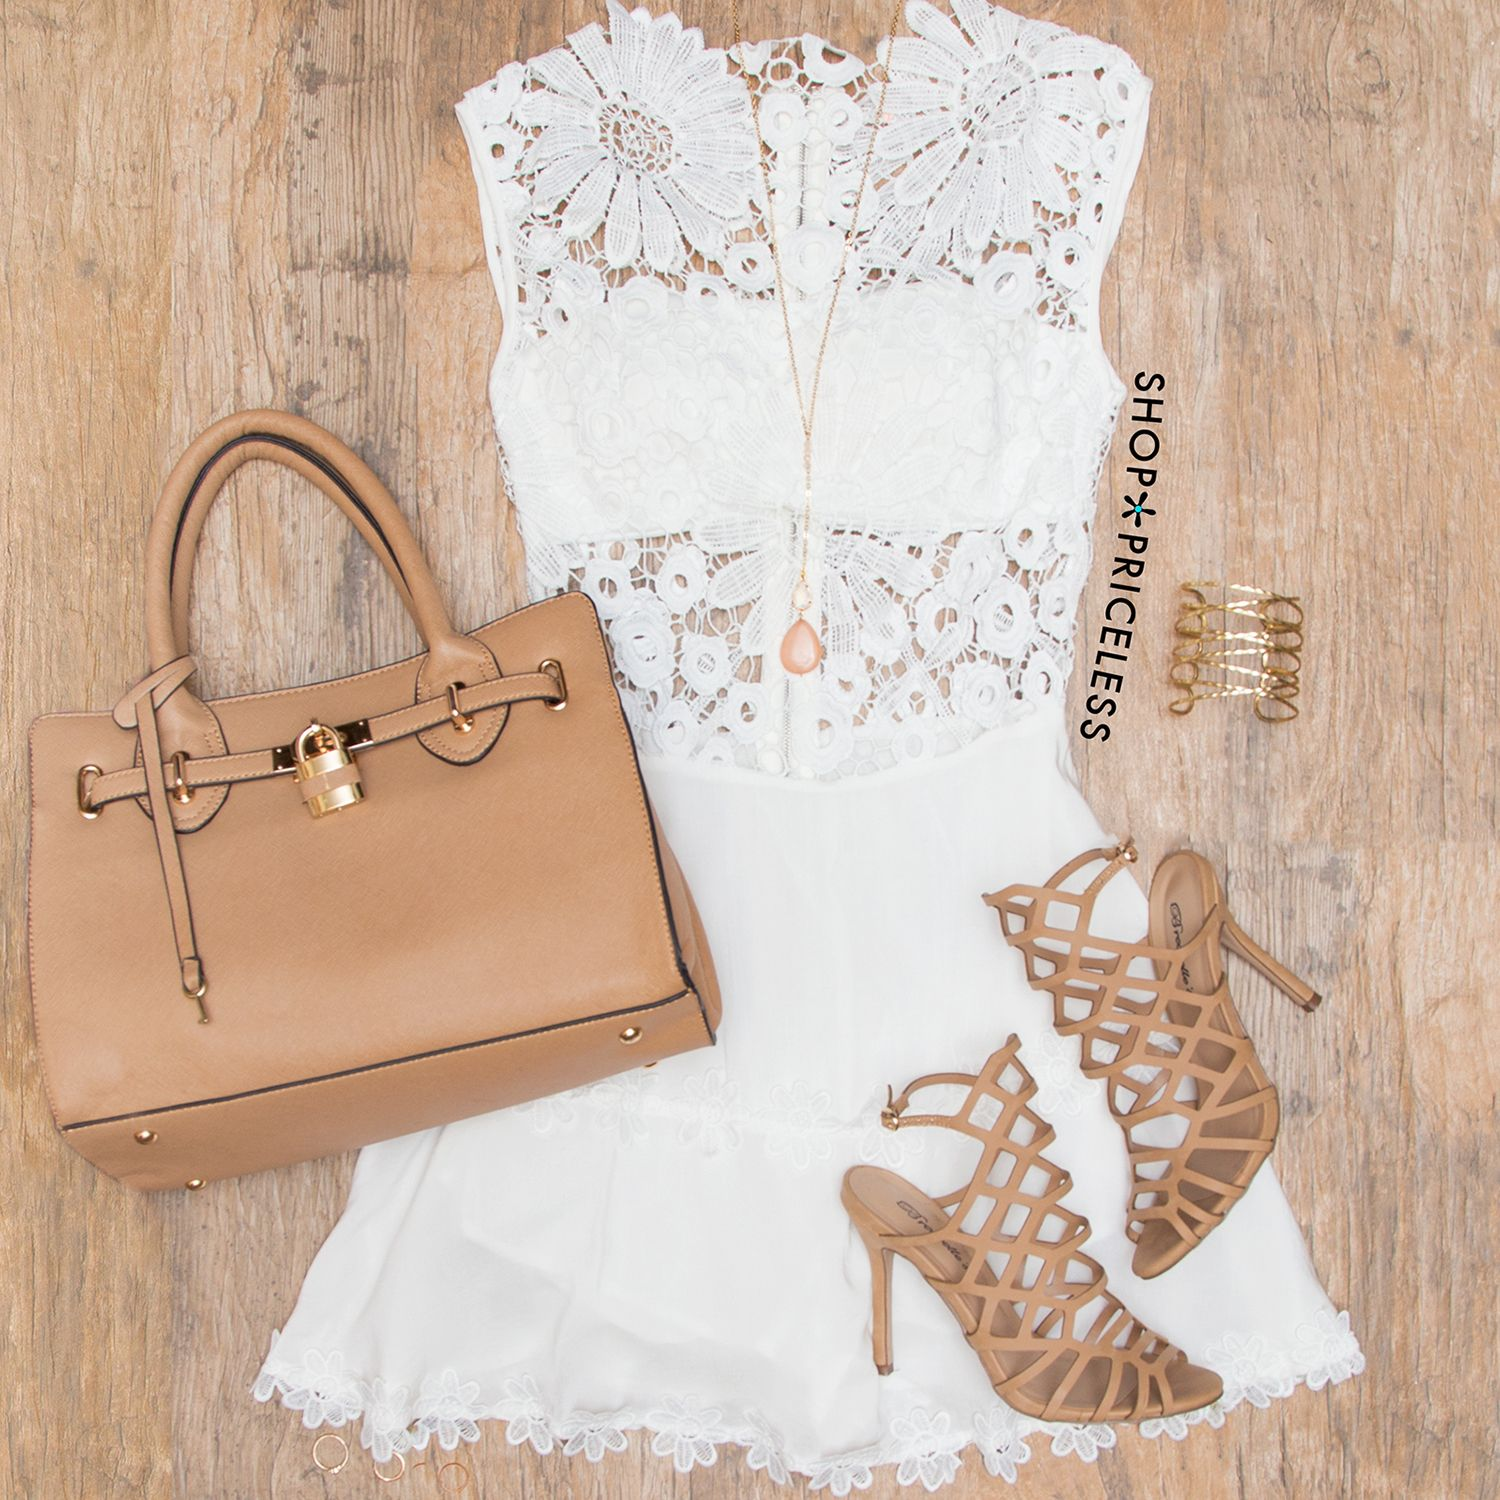 - Details - Size Guide - Model Stats - Contact Girl, go wild for this Lena Flower Lace Dress in white! Features a lightweight knit and crochet and lace fabric with minimal stretch. High neck front wit